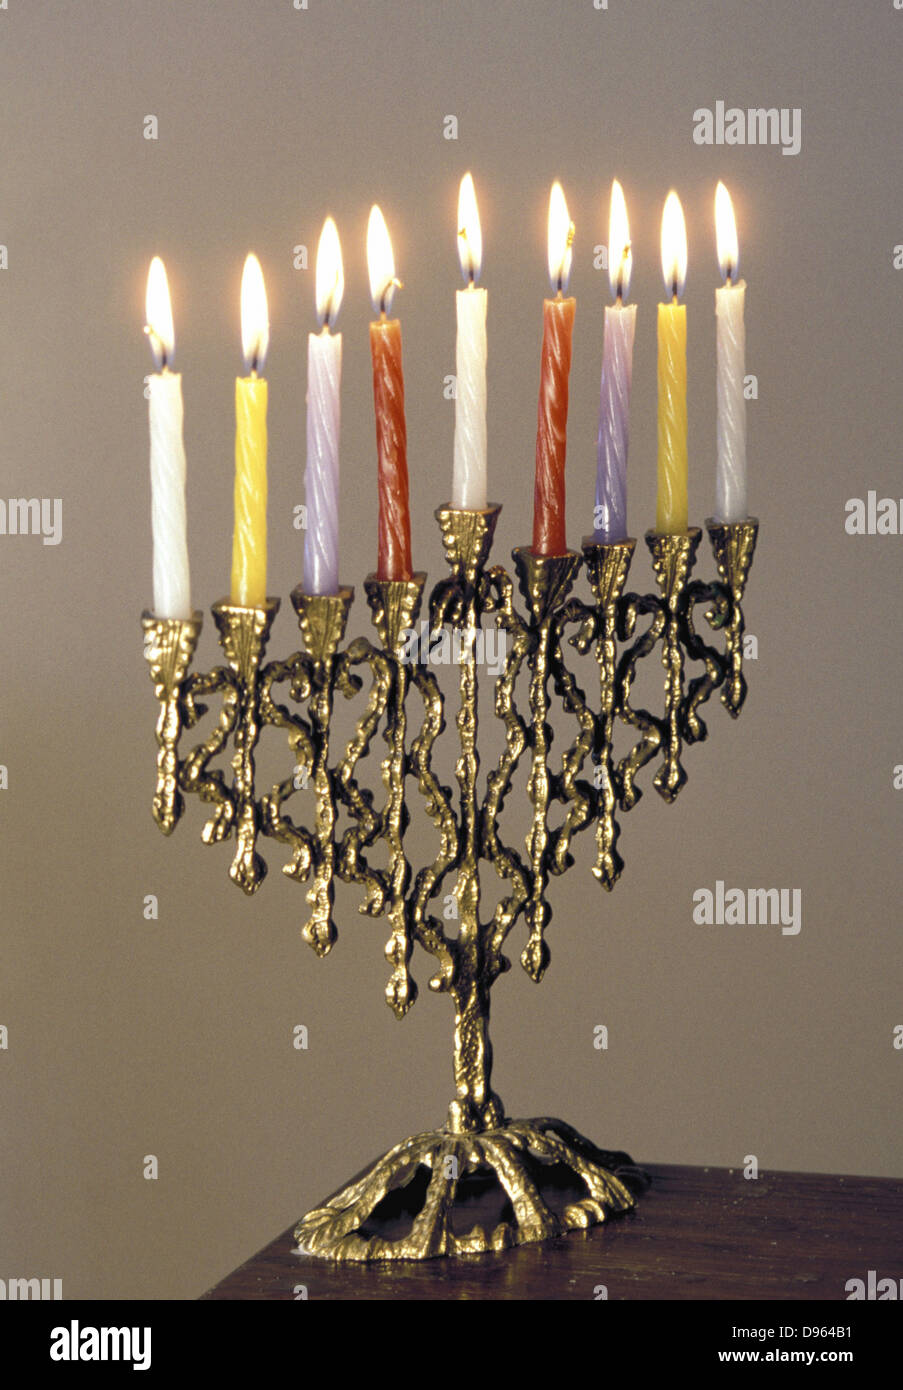 9-branched candelabra used in Judaism at Hannukah . - Stock Image